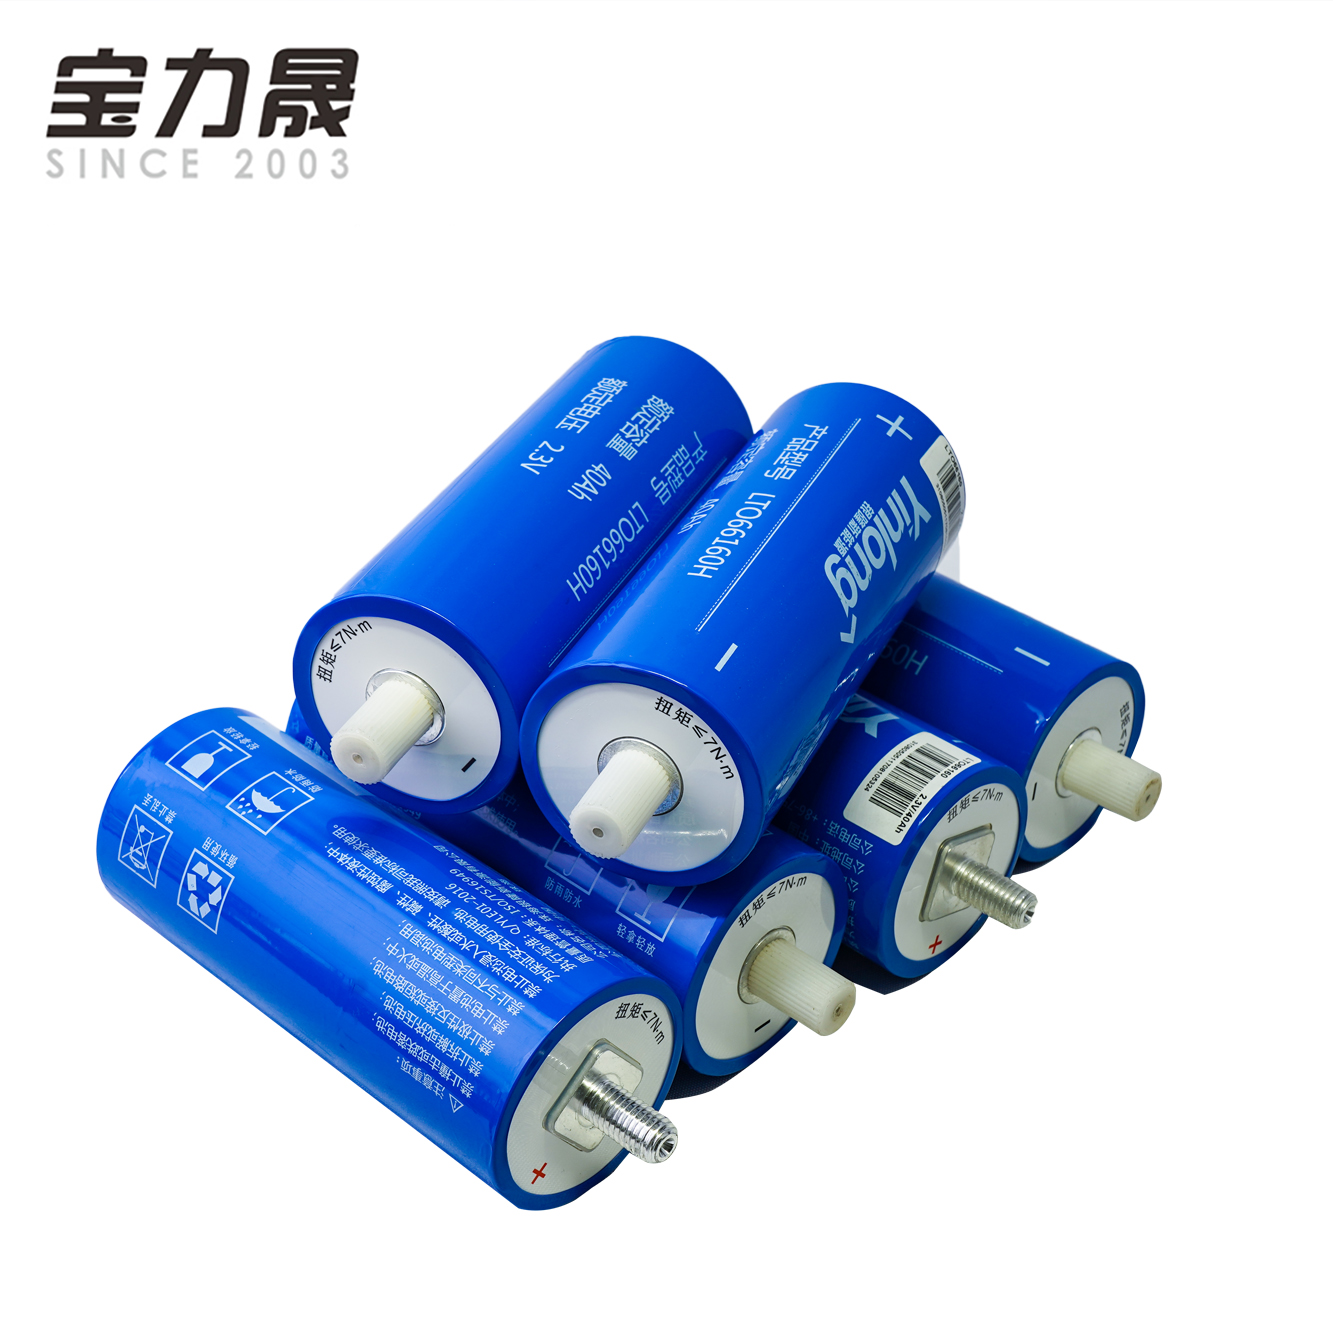 60pcs 2.3V 40AH YINLONG LTO <font><b>66160</b></font> Lithium Titanate Battery Cell 2.4v 10C 400A for 12v 14.4v Power Long Cycle Life EV golf cart image